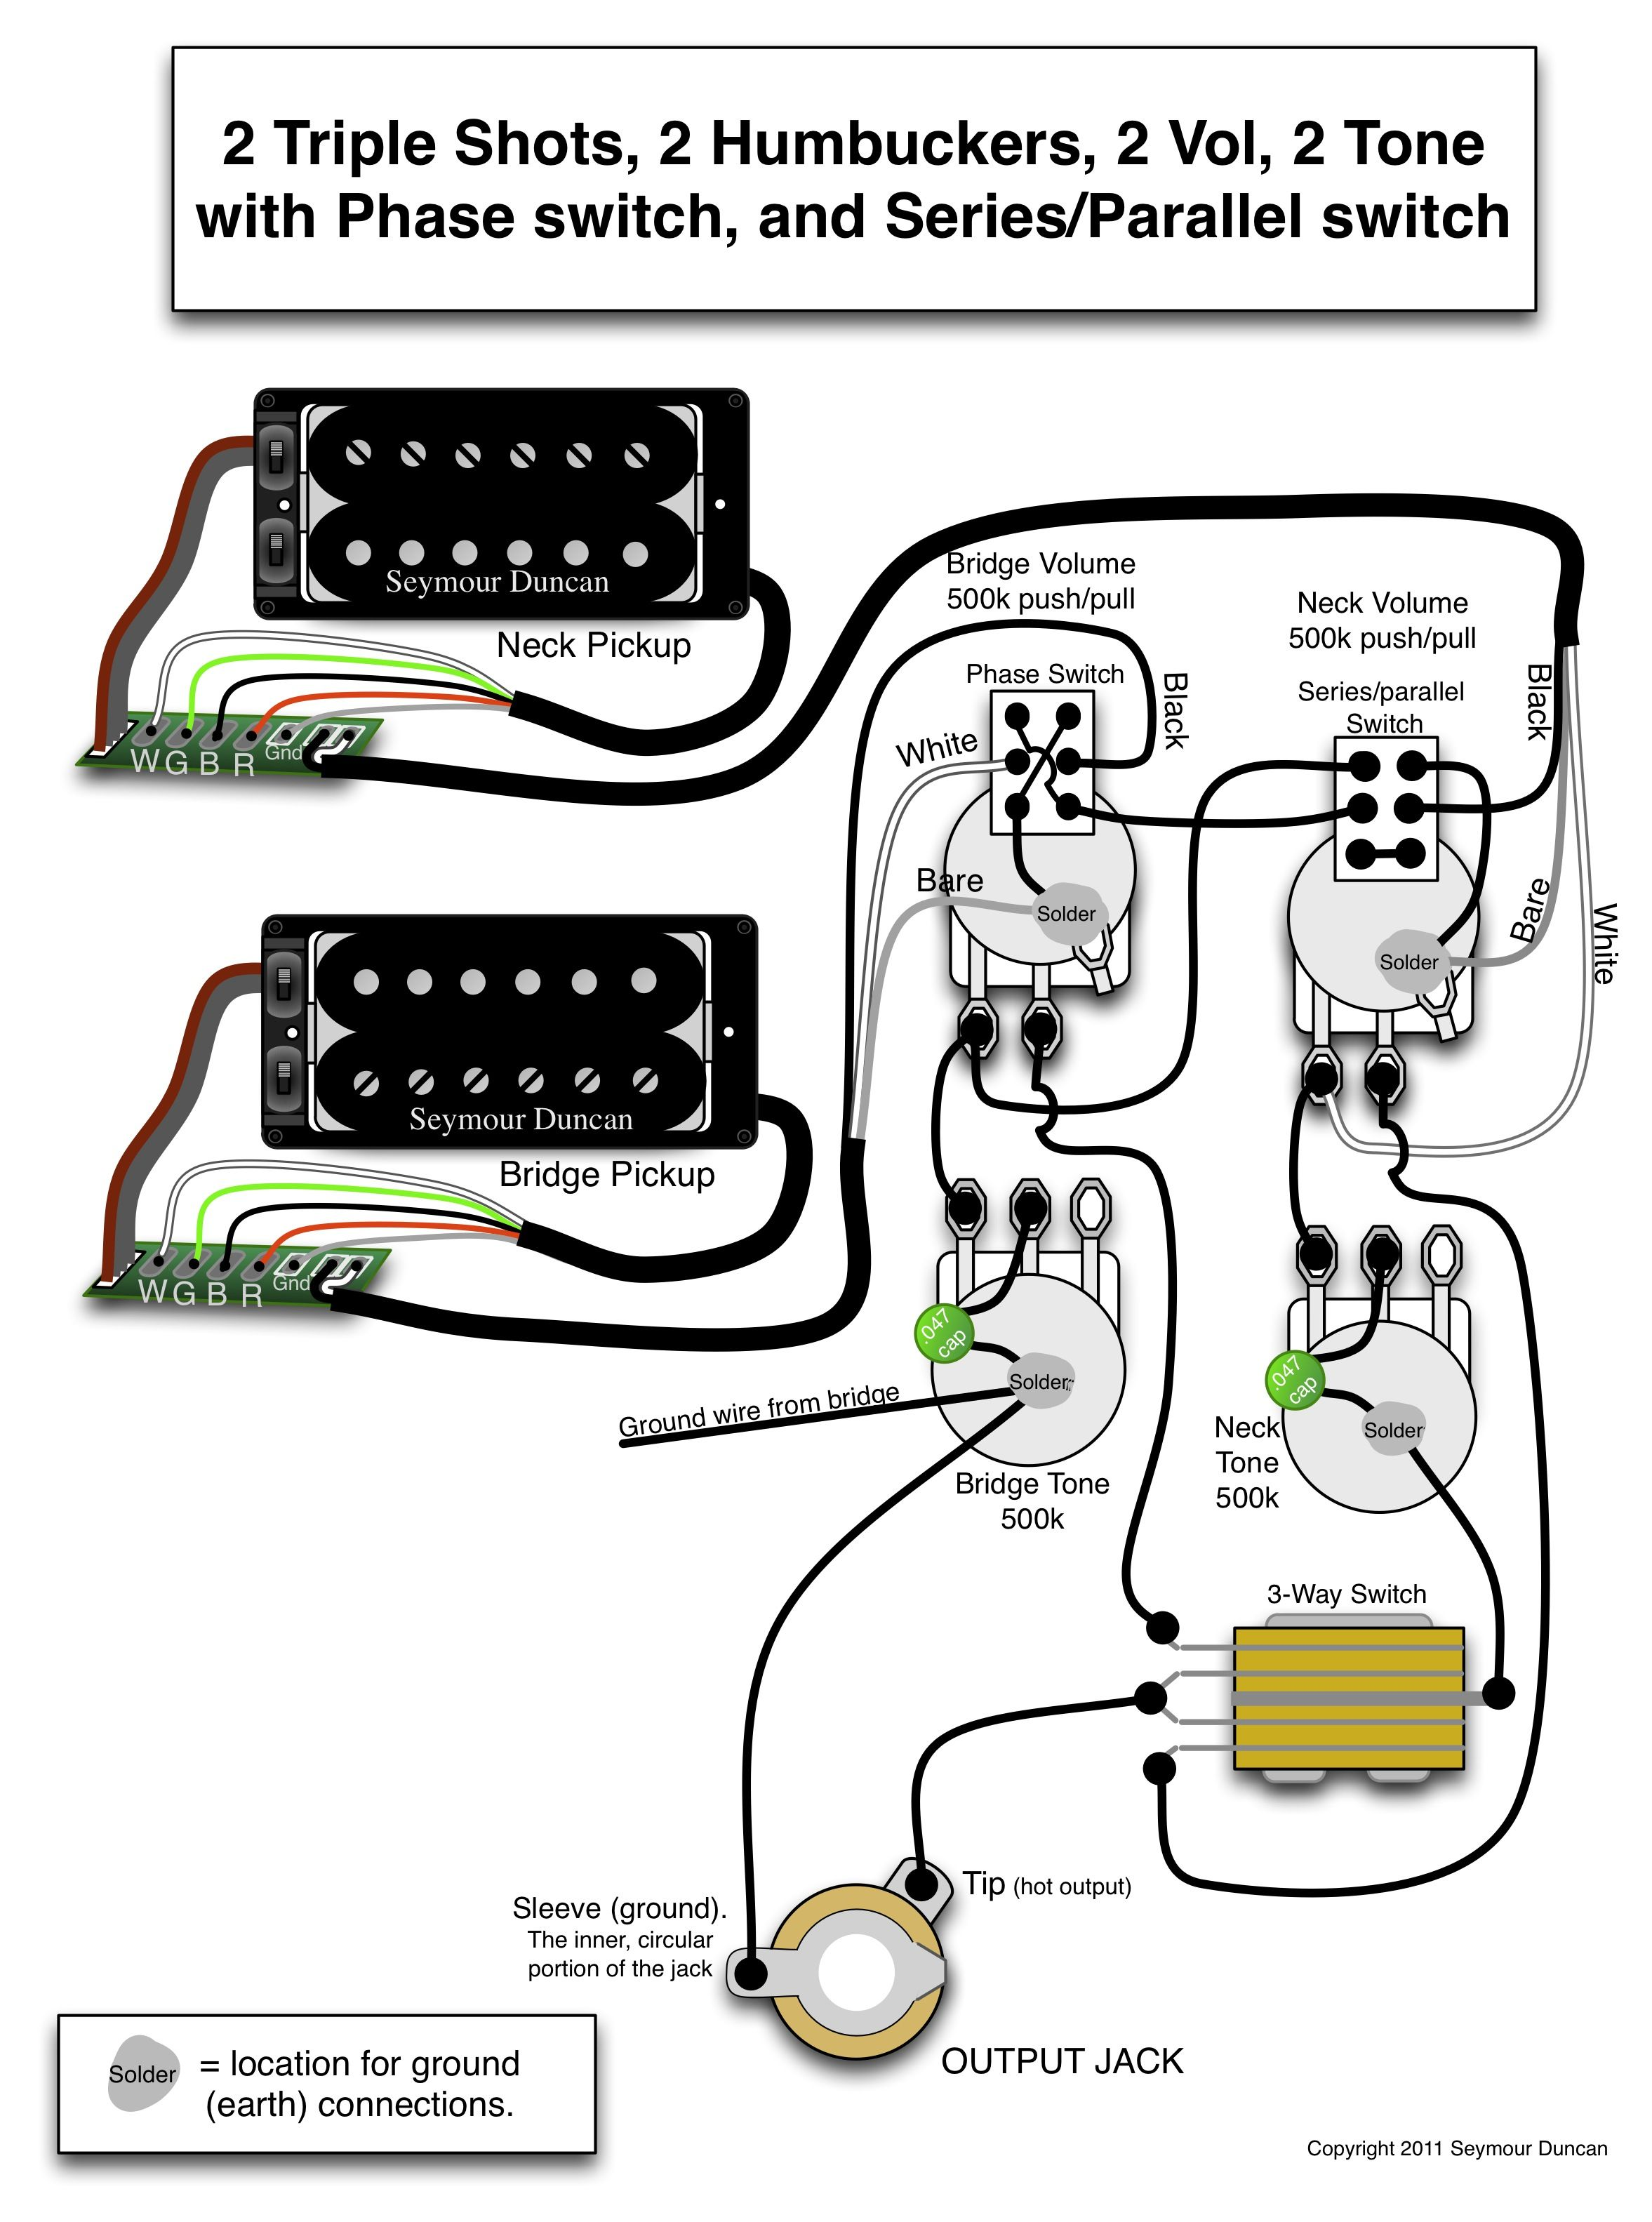 3 Humbucker Wiring Diagram Parallel Just Another Blog Single Pickup Seymour Duncan 2 Triple Shots Humbuckers Vol Rh Pinterest Com Dimarzio